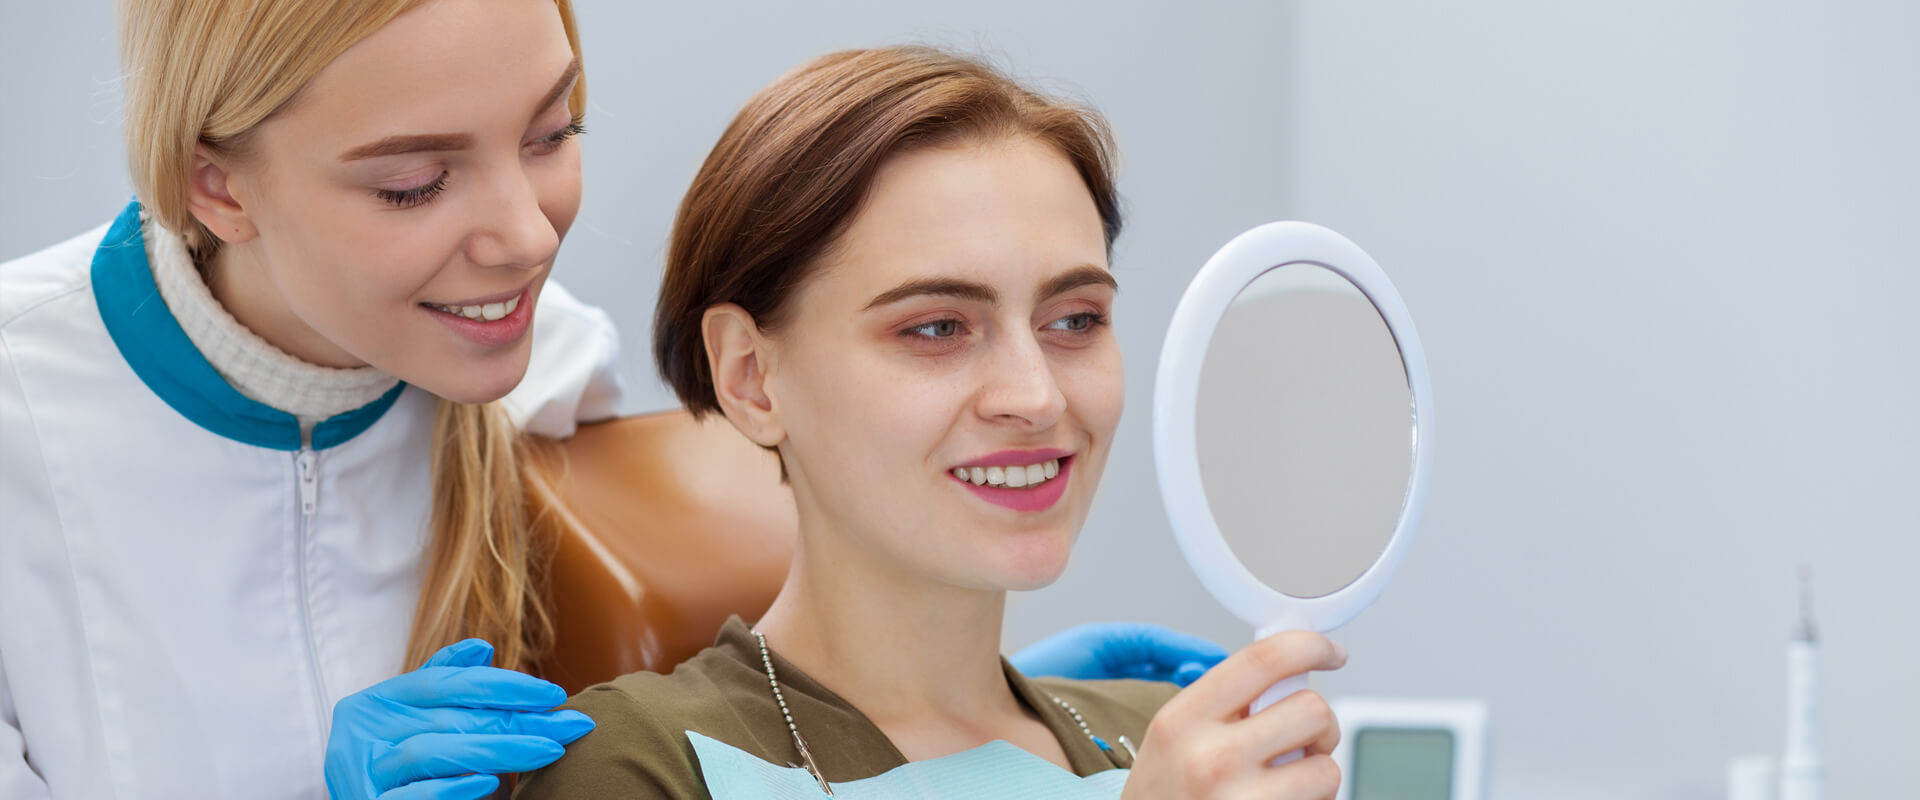 Female patient at dental clinic checking her teeth using a hand mirror